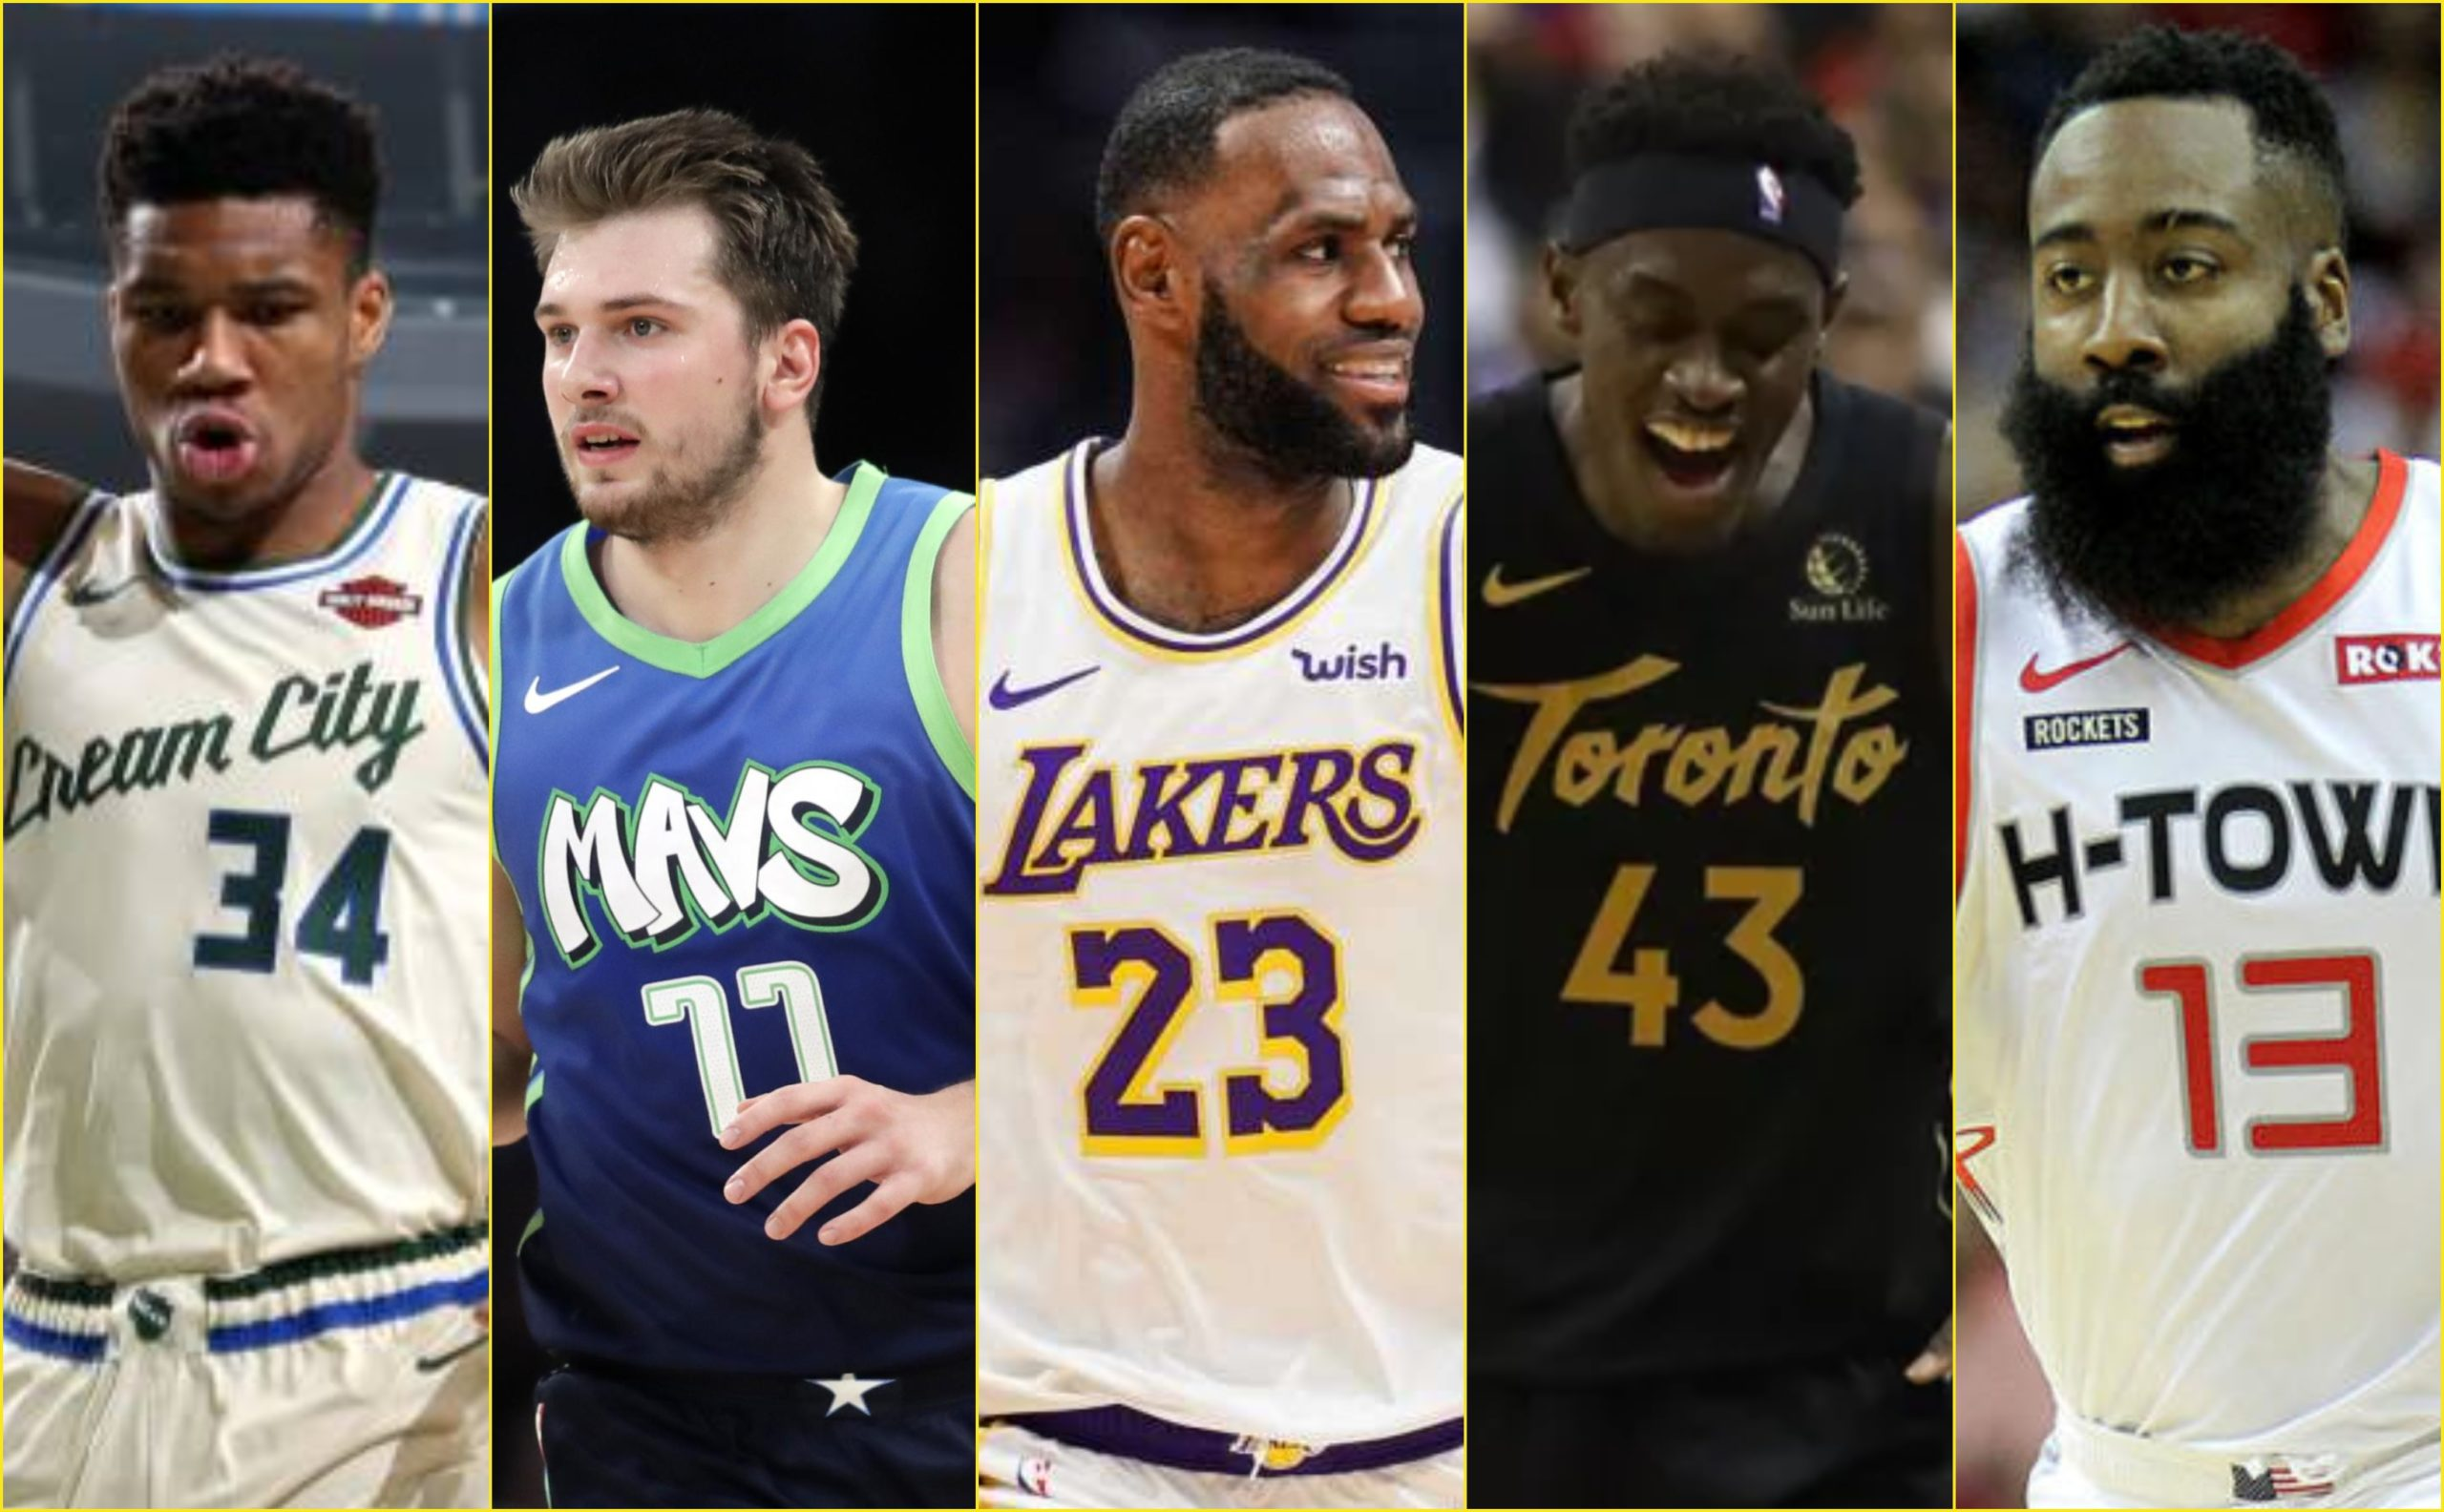 Our really early predictions for the 2019-20 NBA All-Star teams, snubs